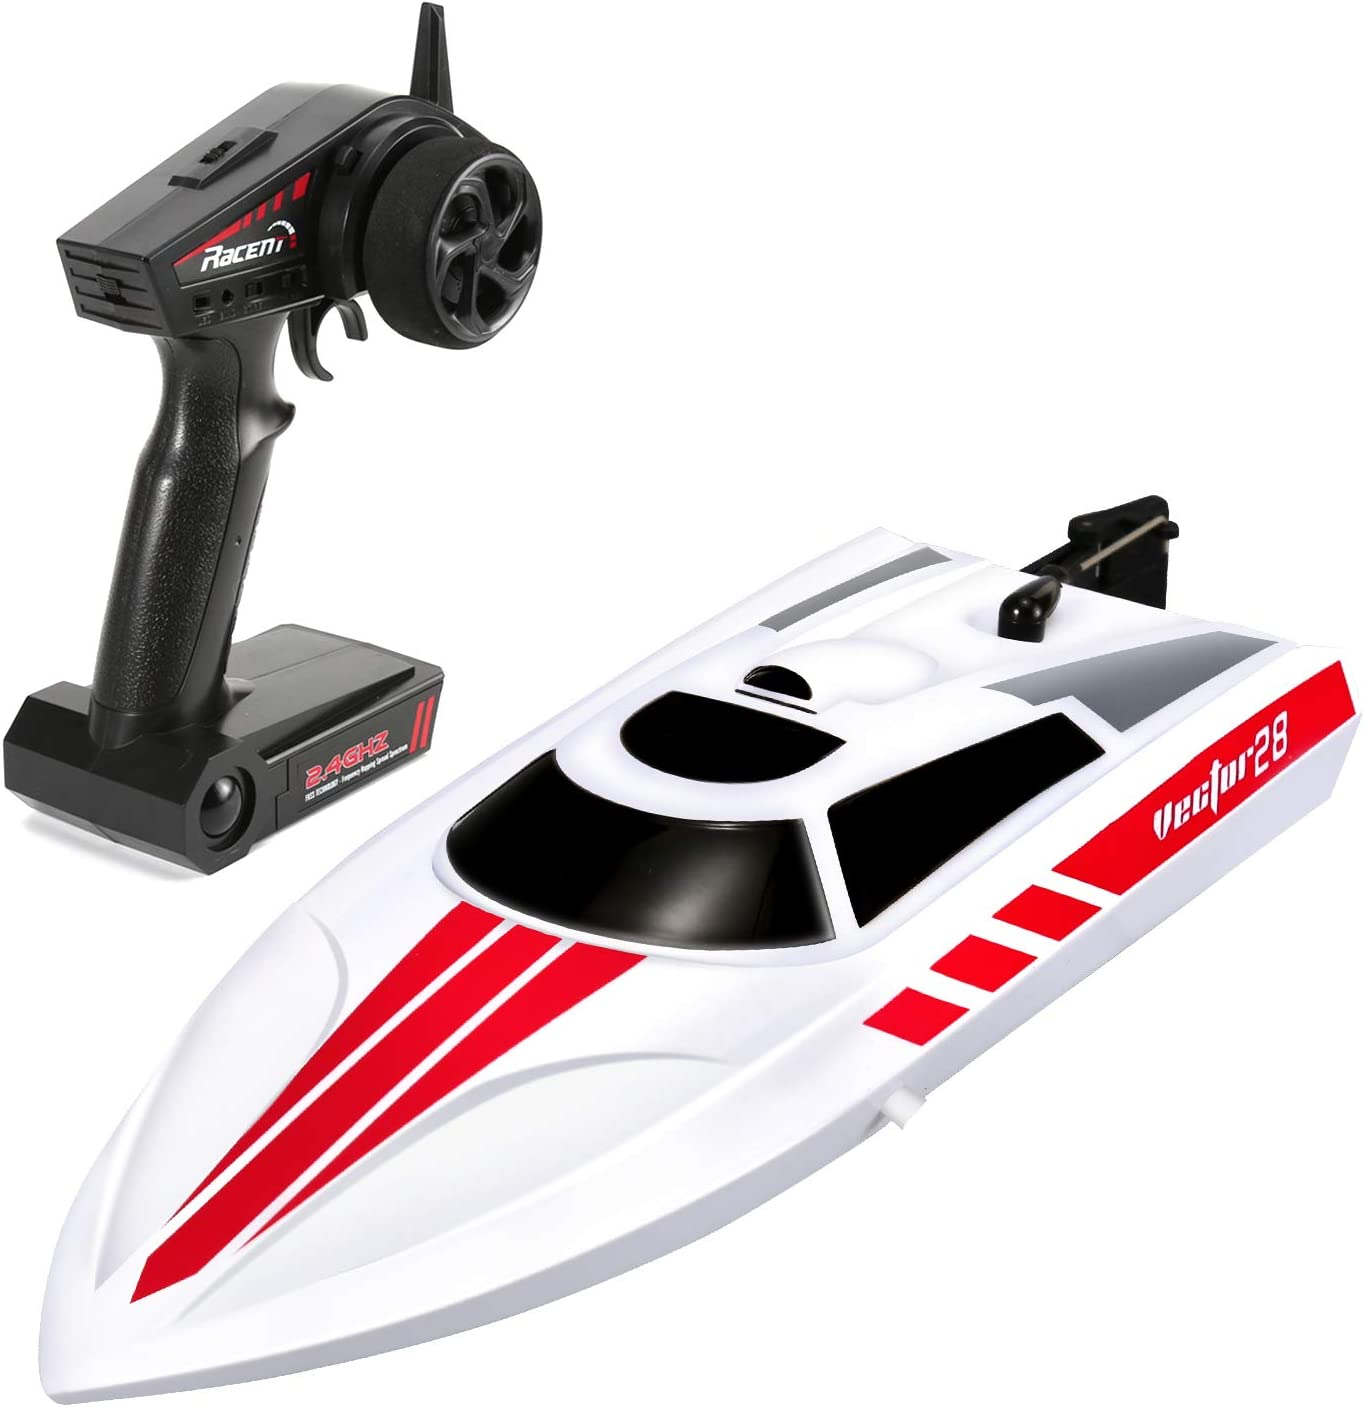 Top 5 Best RC Boat for Kids Reviews in 2020 3